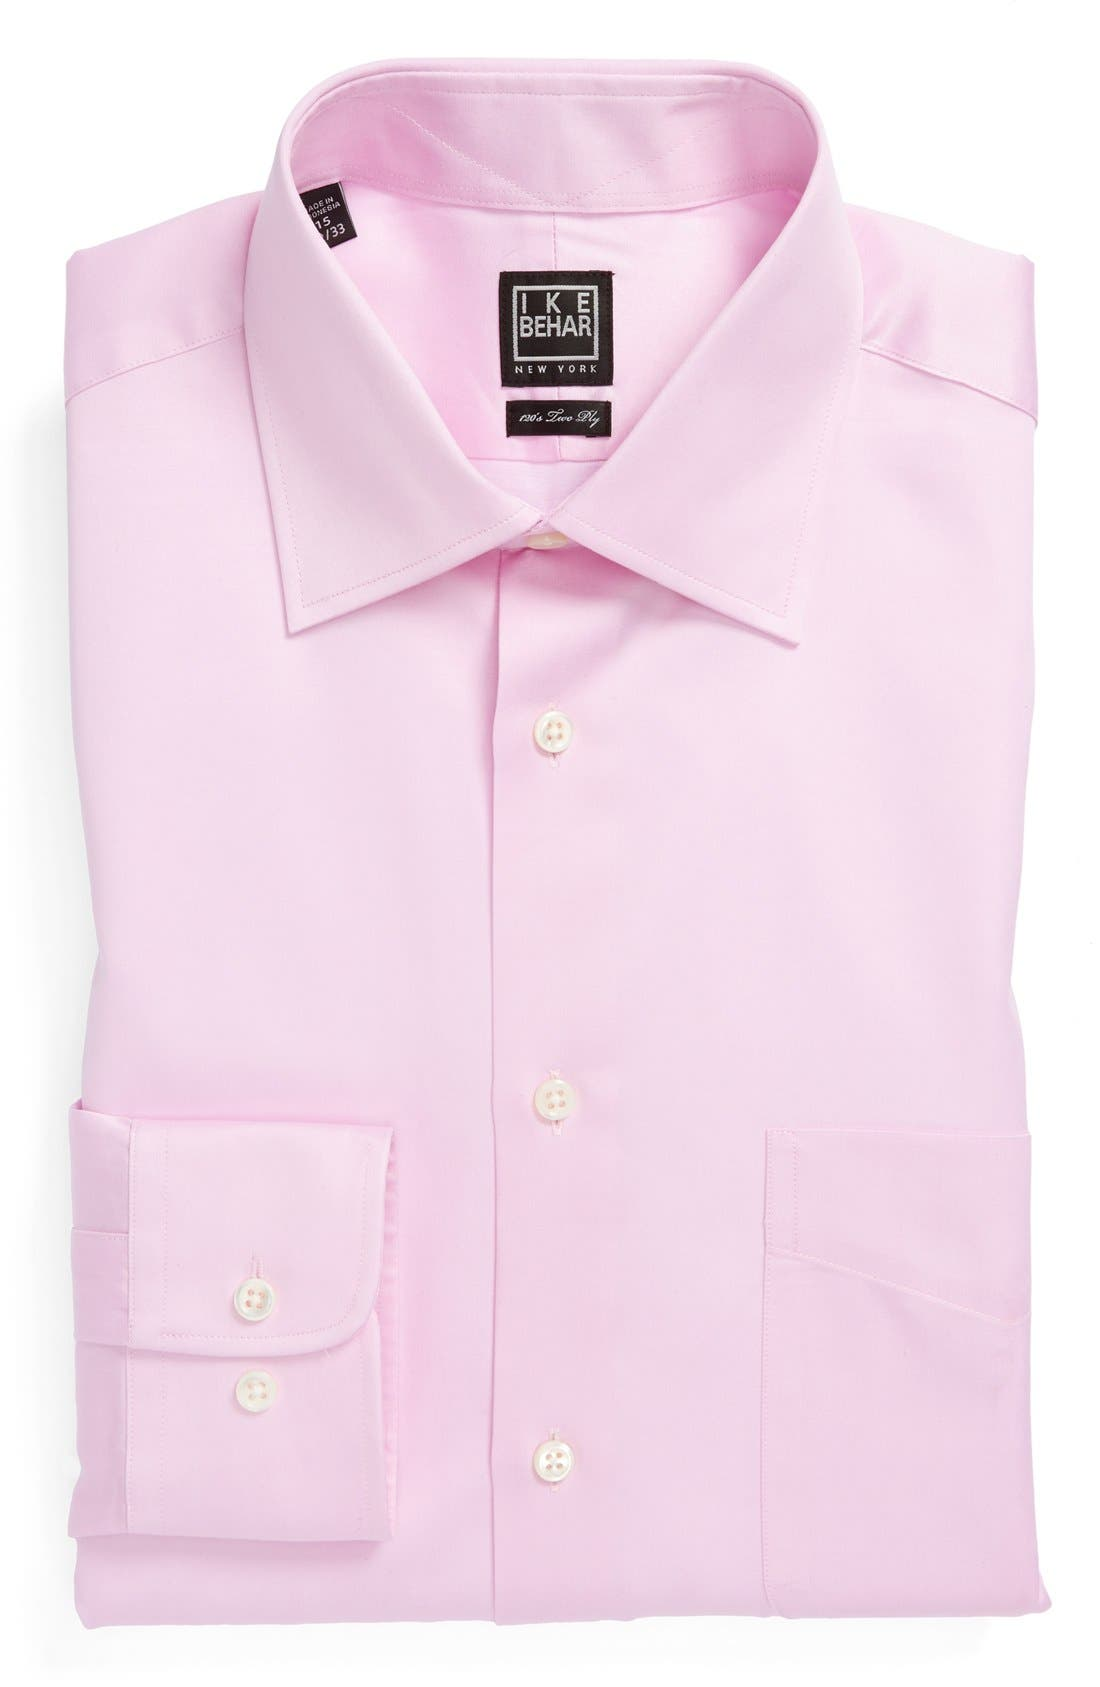 Alternate Image 1 Selected - Ike Behar Regular Fit Solid Dress Shirt (Online Only)